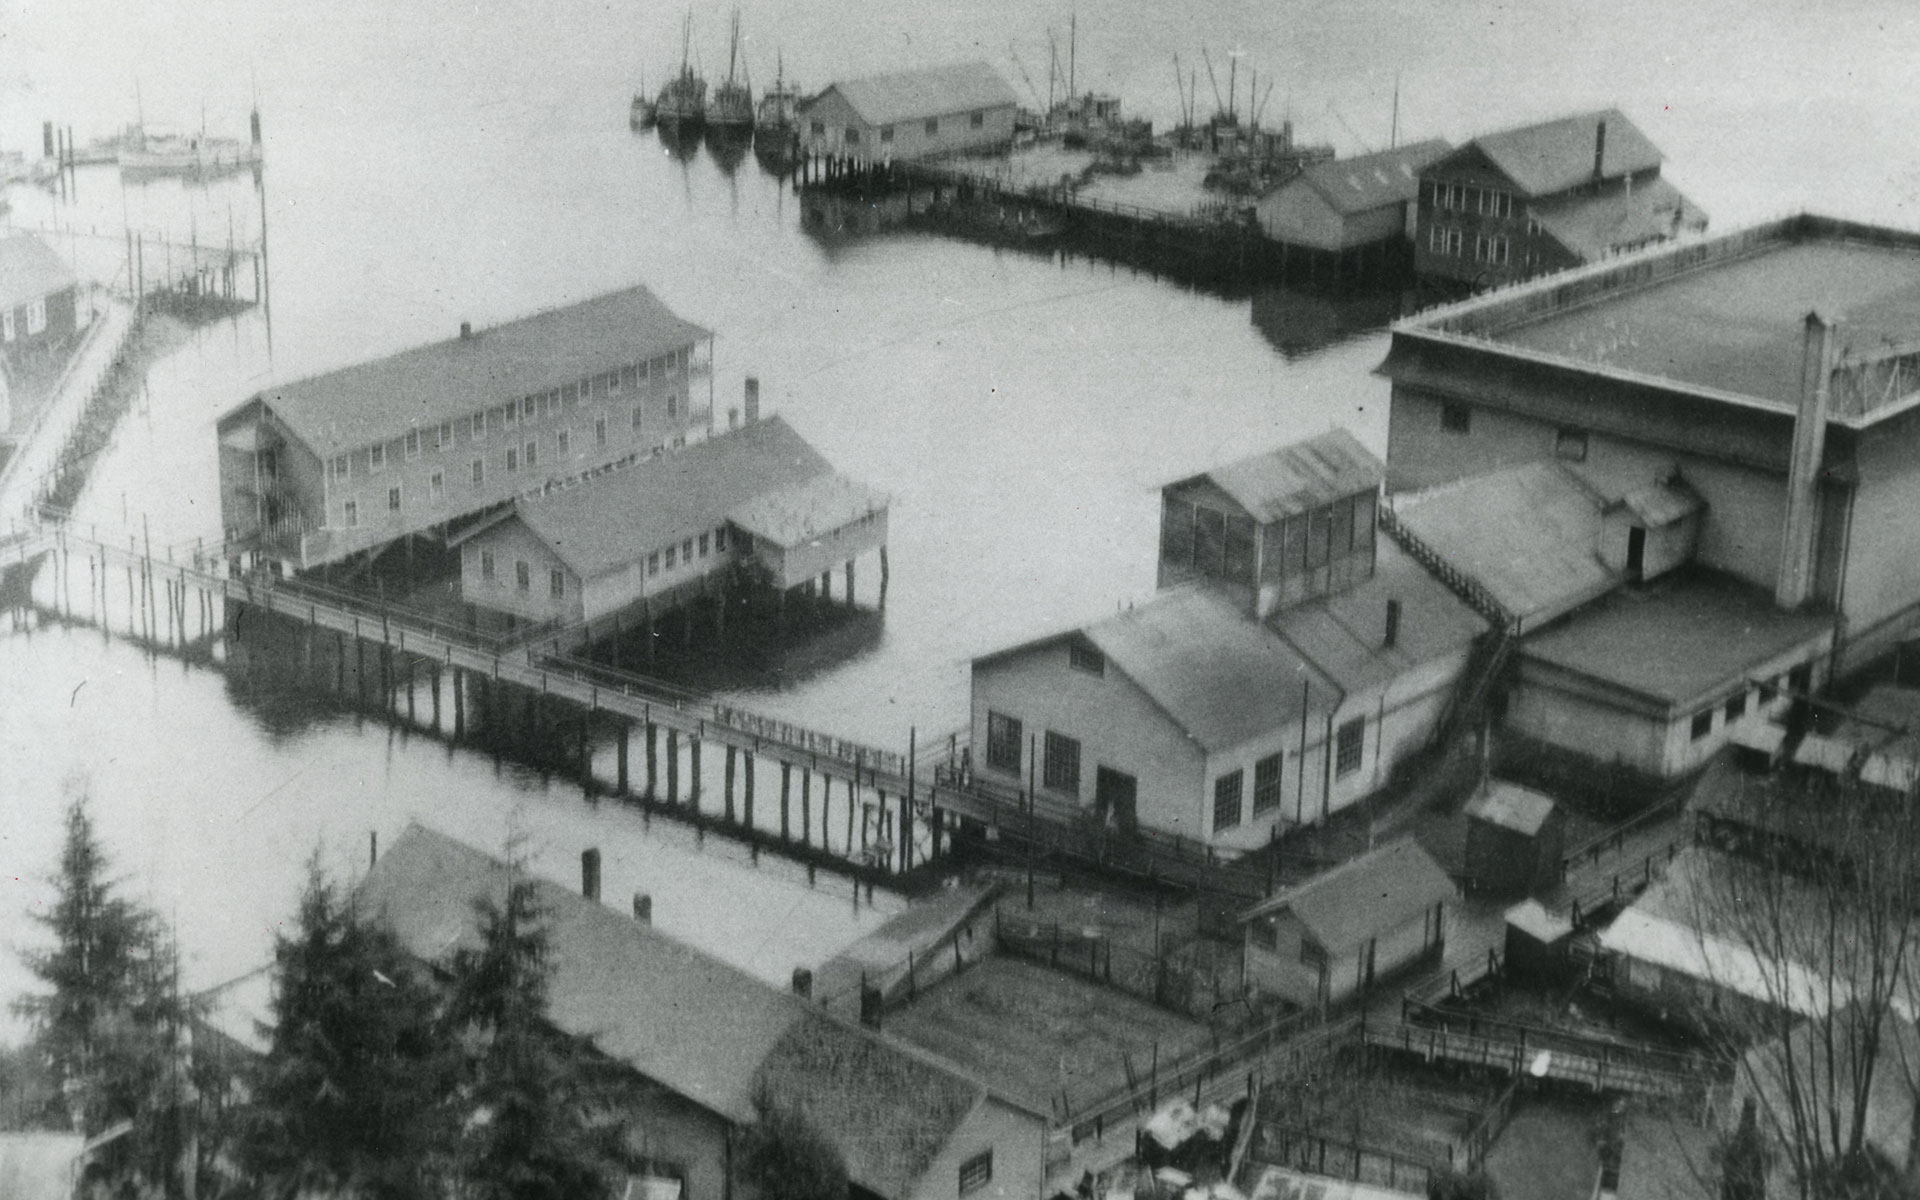 Kildonan Cannery buildings viewed from above showing the buildings and wharves extending over the water